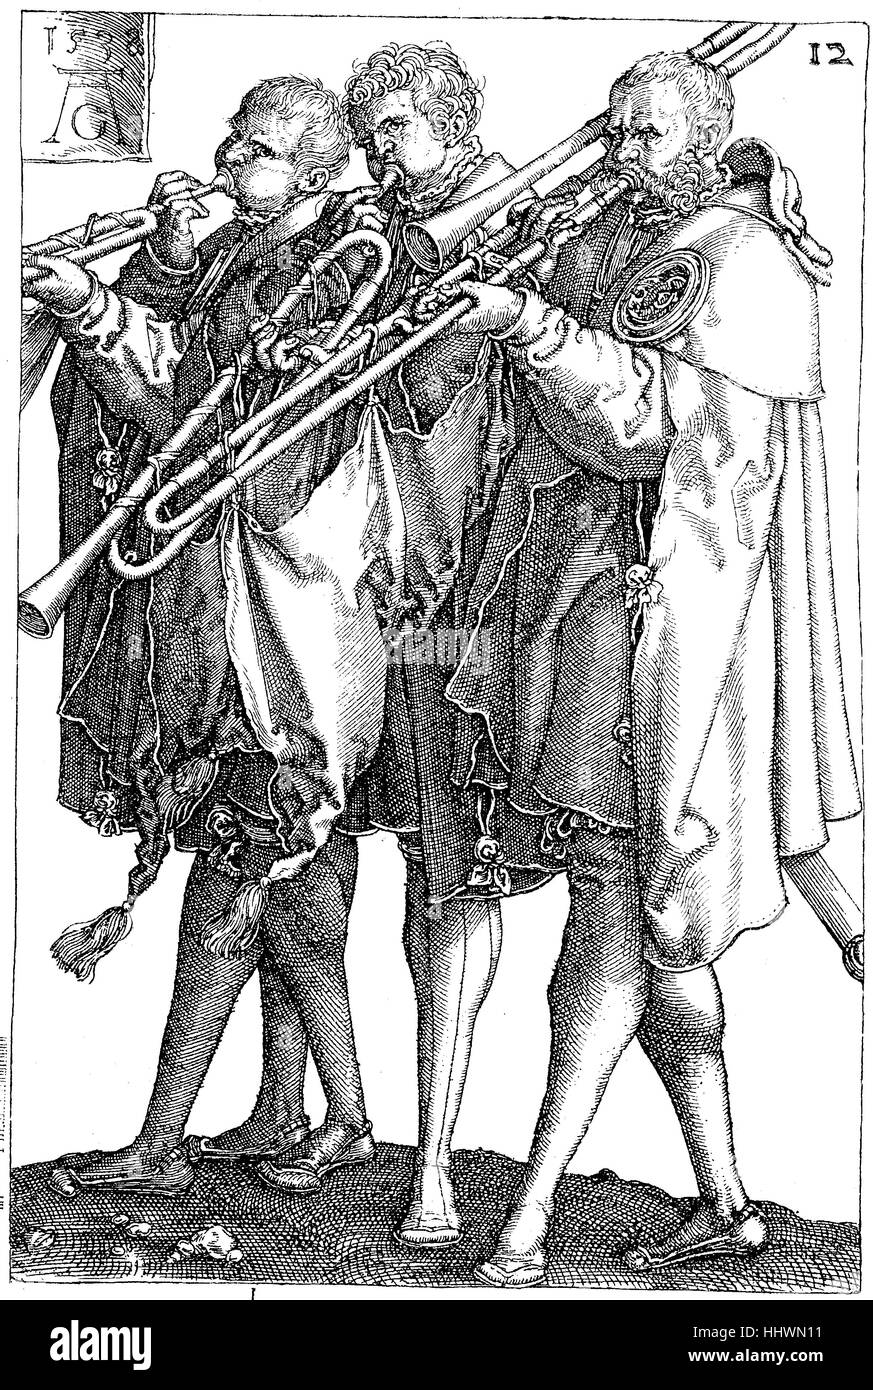 From the copper engraving series (1502-1562) of the wedding dancers, Hochzeitstaenzer, by Heinrich Aldegrever, an - Stock Image